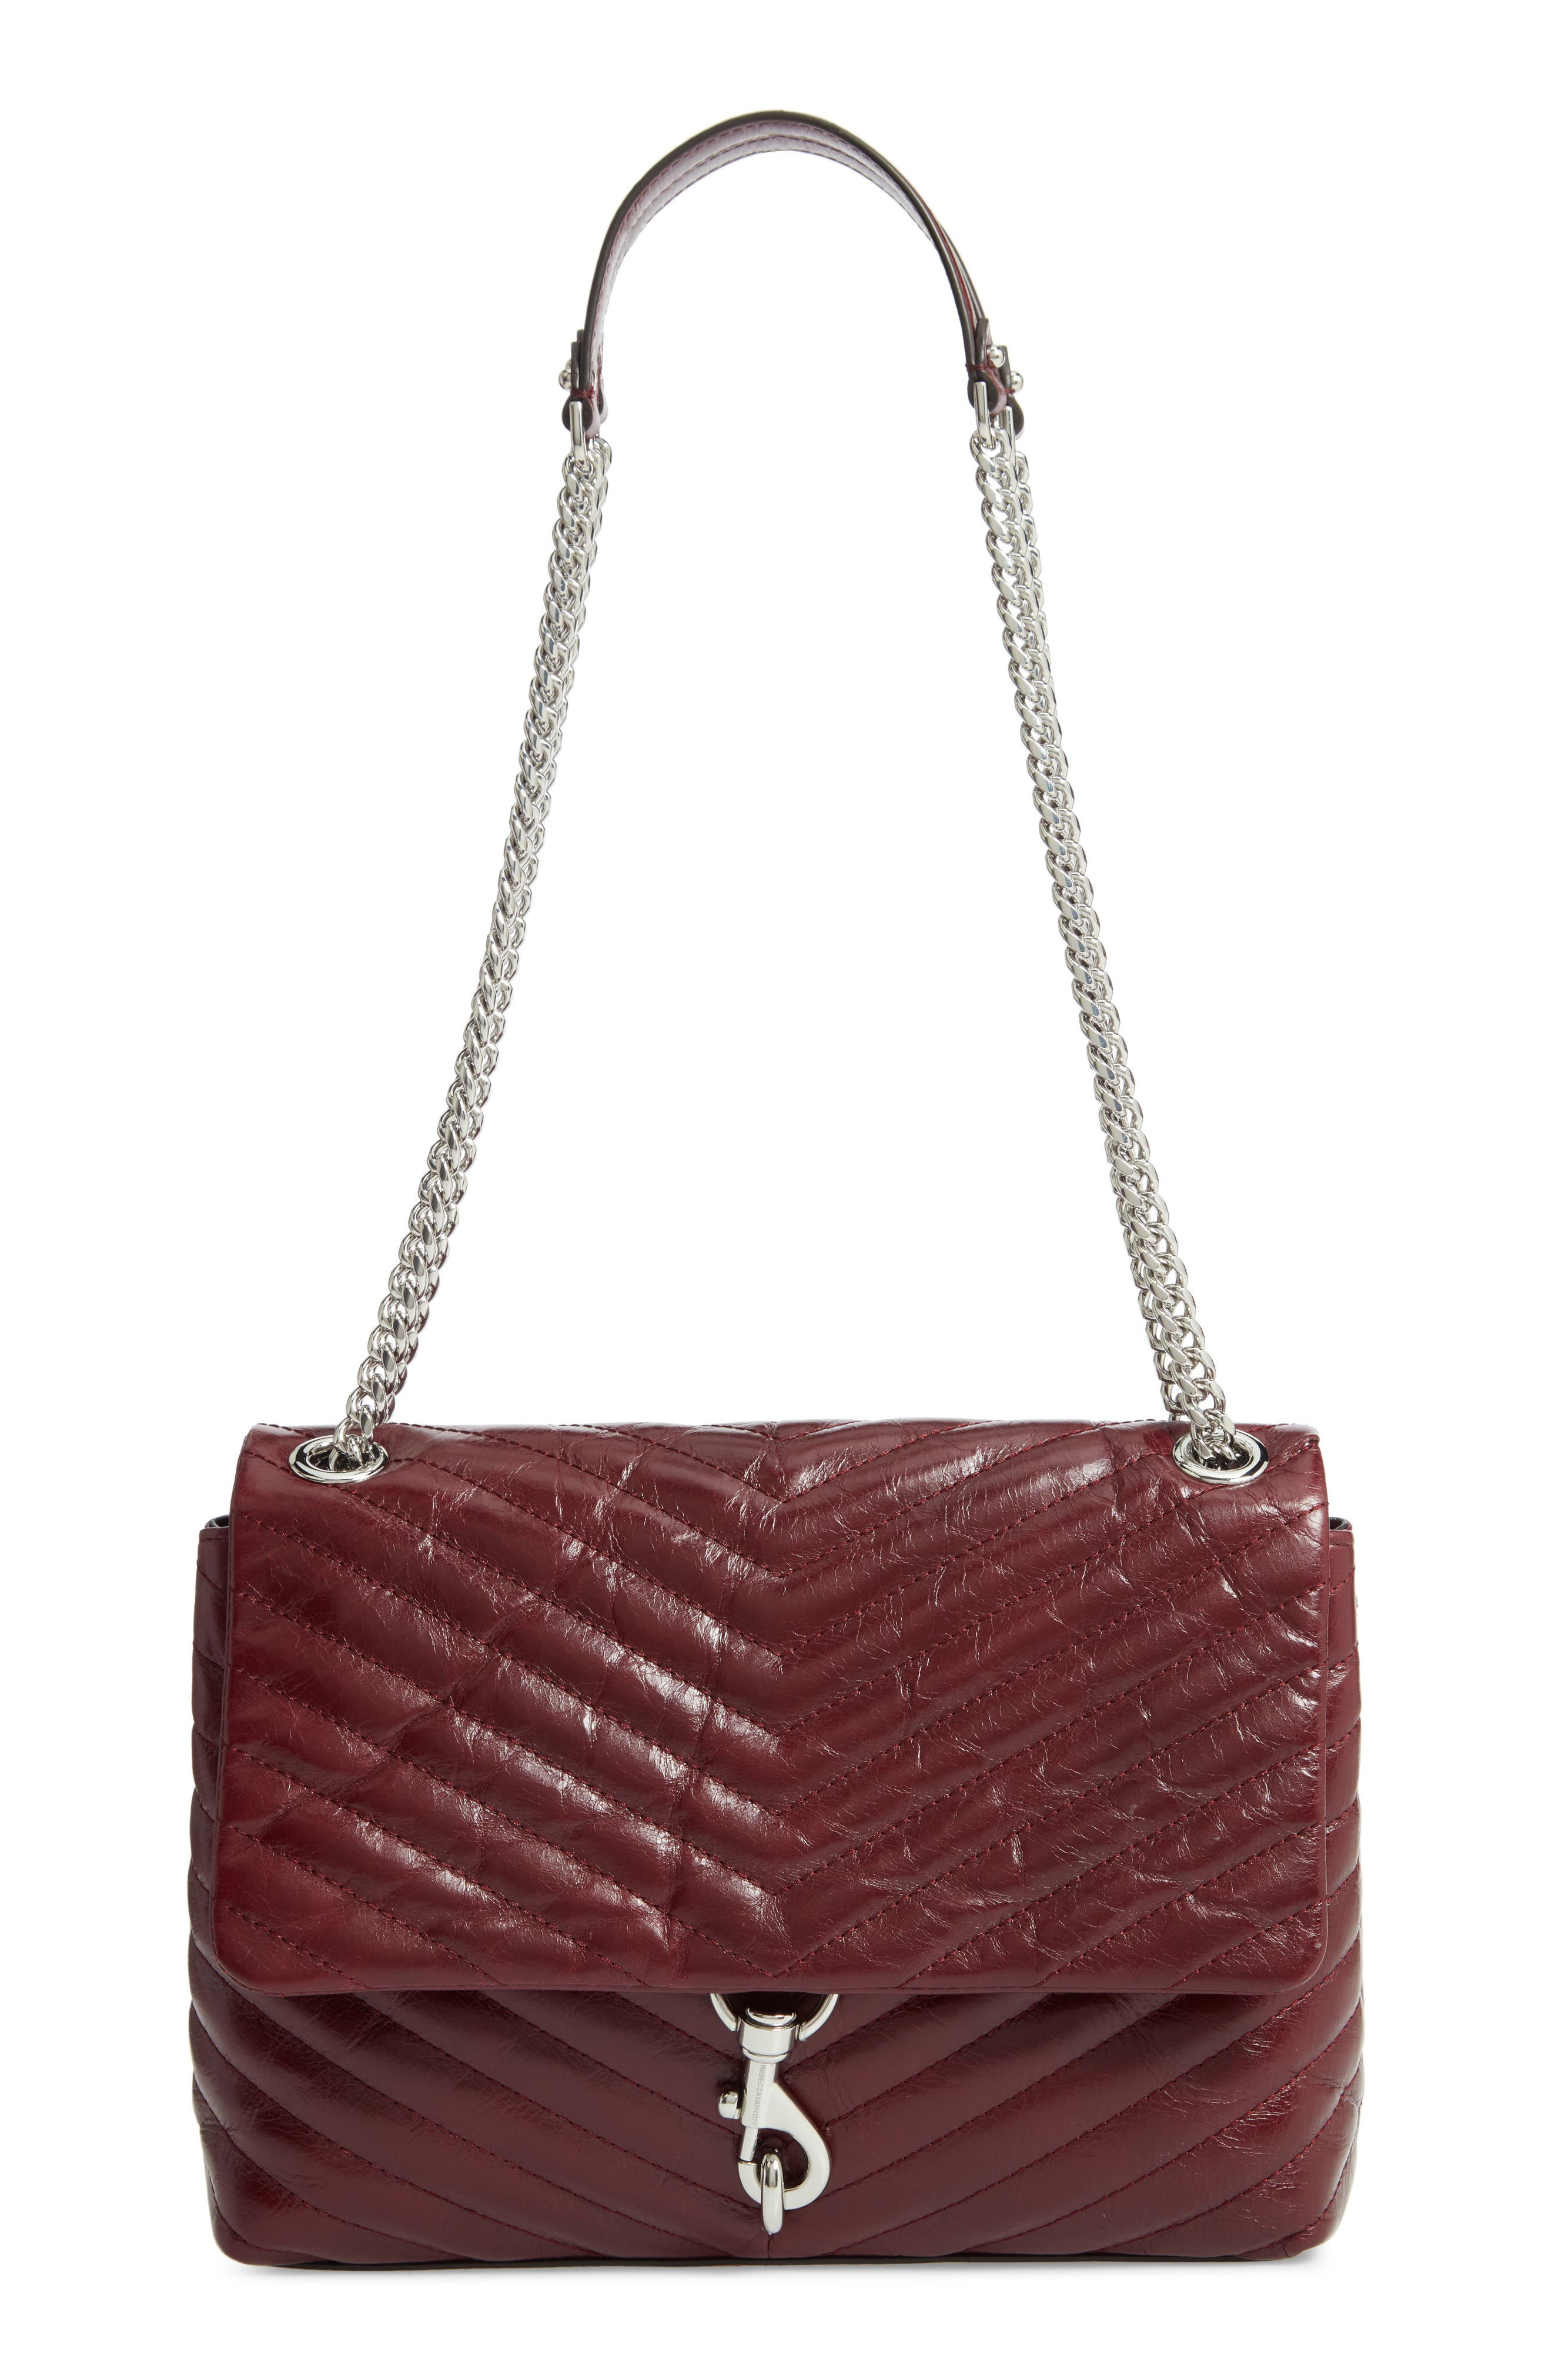 Edie Flap Front Leather Shoulder Bag,                             Main thumbnail 1, color,                             BORDEAUX